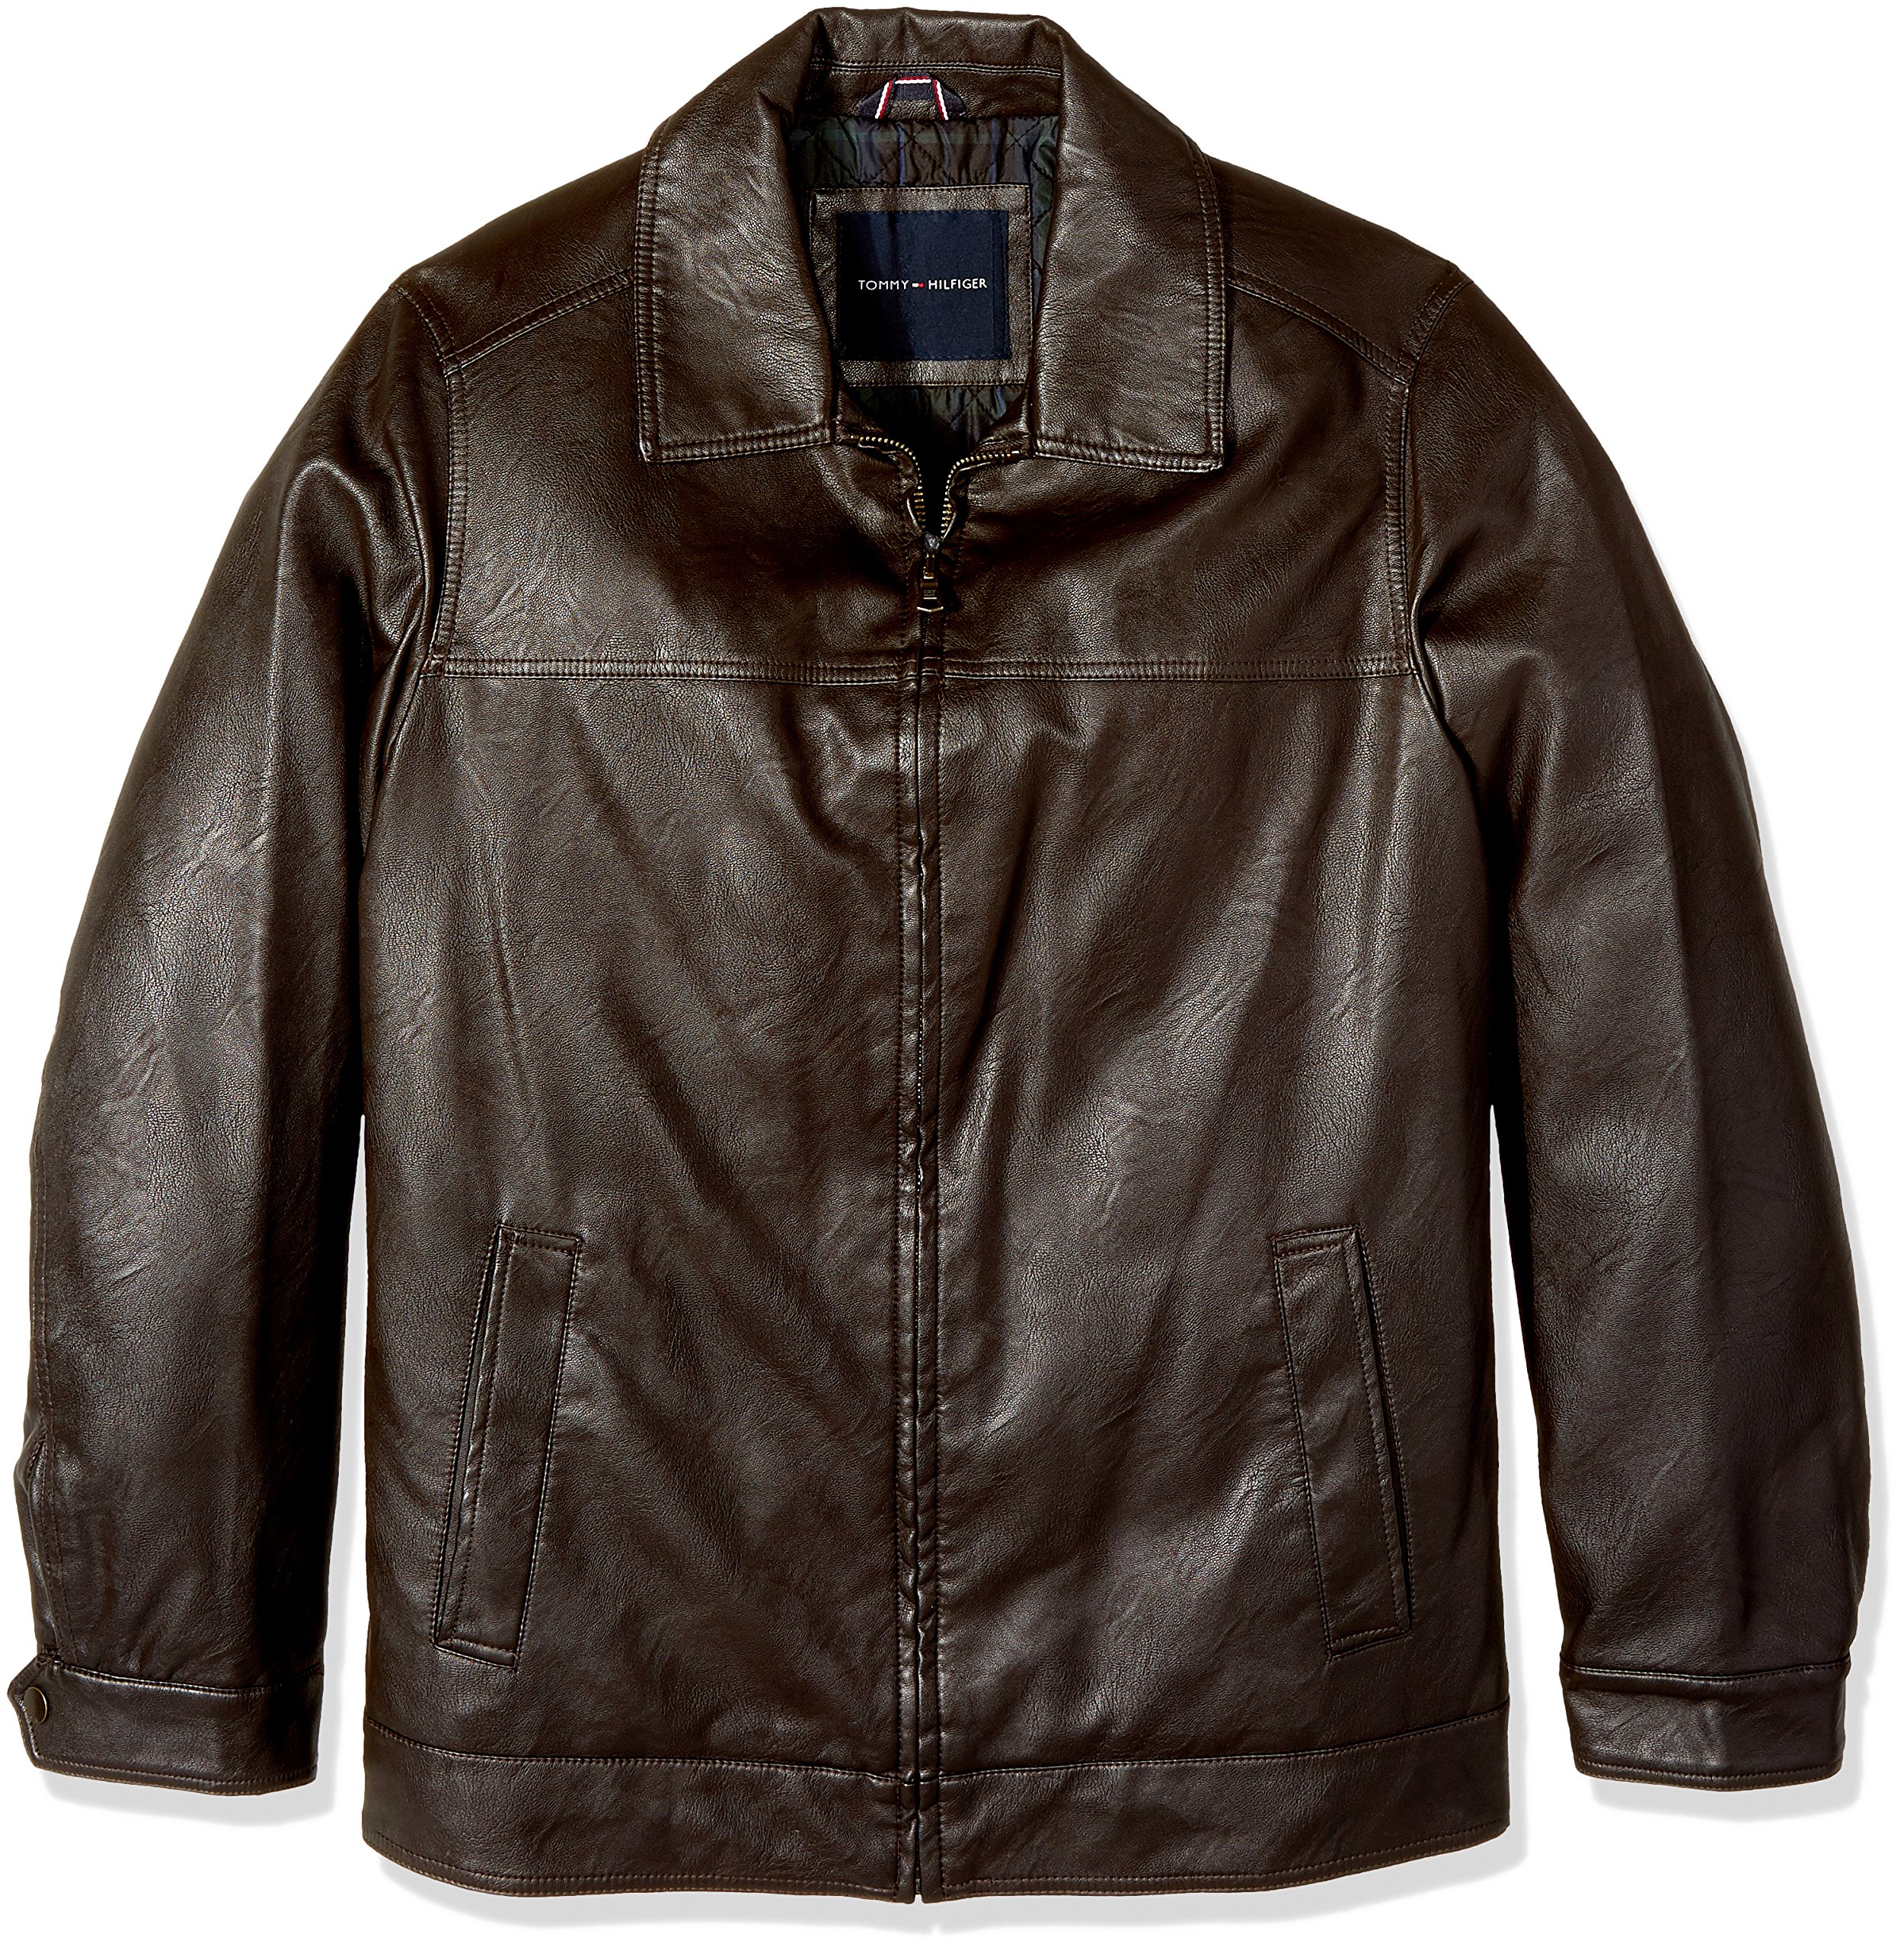 Tommy Hilfiger Men's Big & Tall Smooth Faux Leather Classic James Dean Jacket, Dark Brown, 2X Big